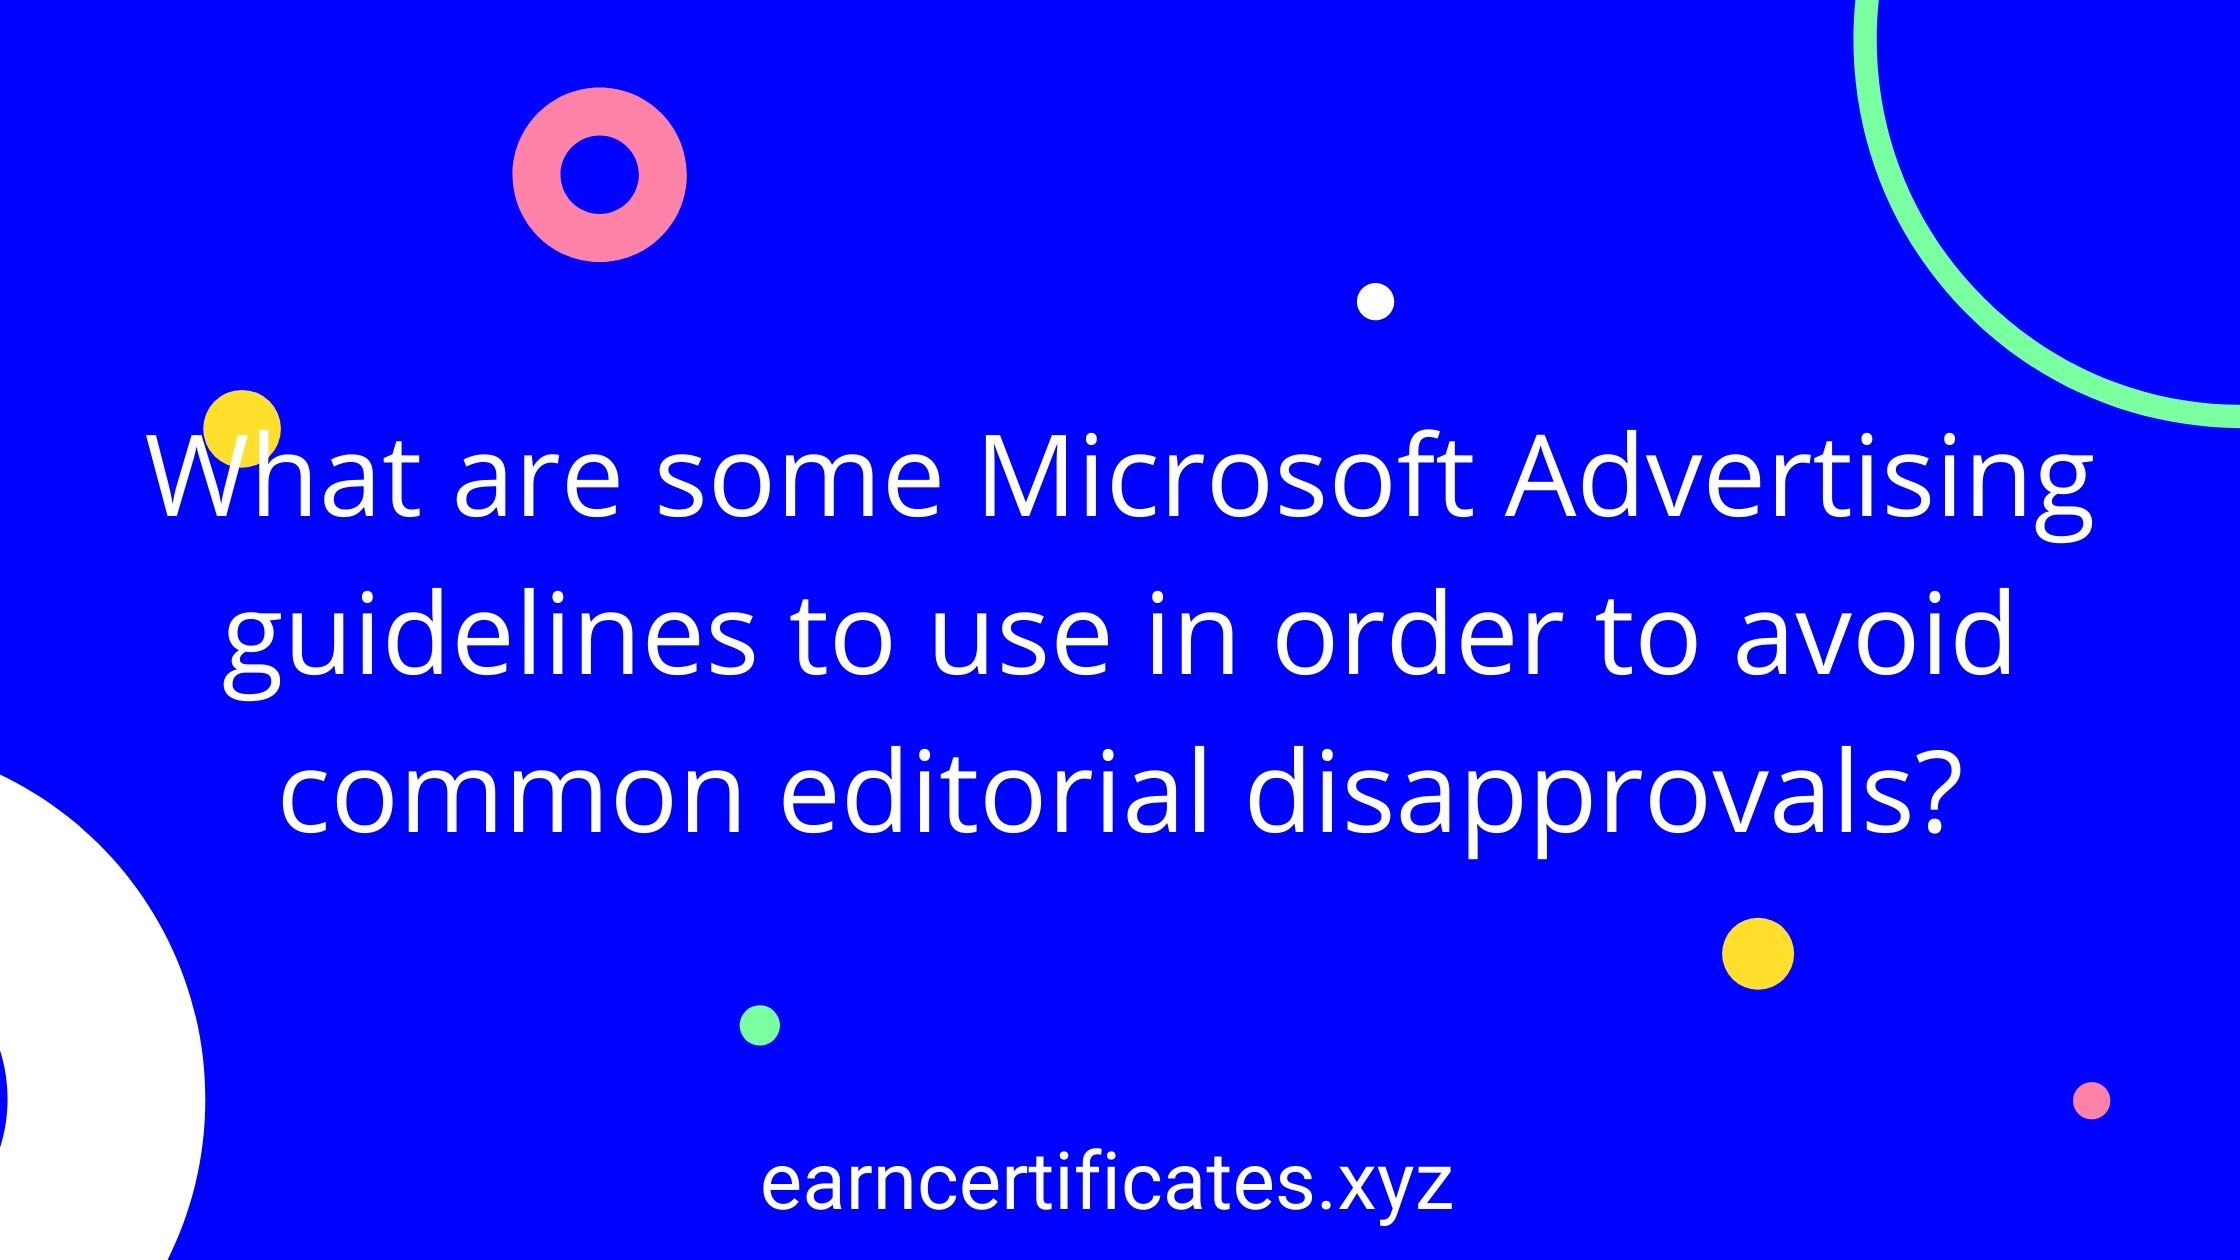 What are some Microsoft Advertising guidelines to use in order to avoid common editorial disapprovals?